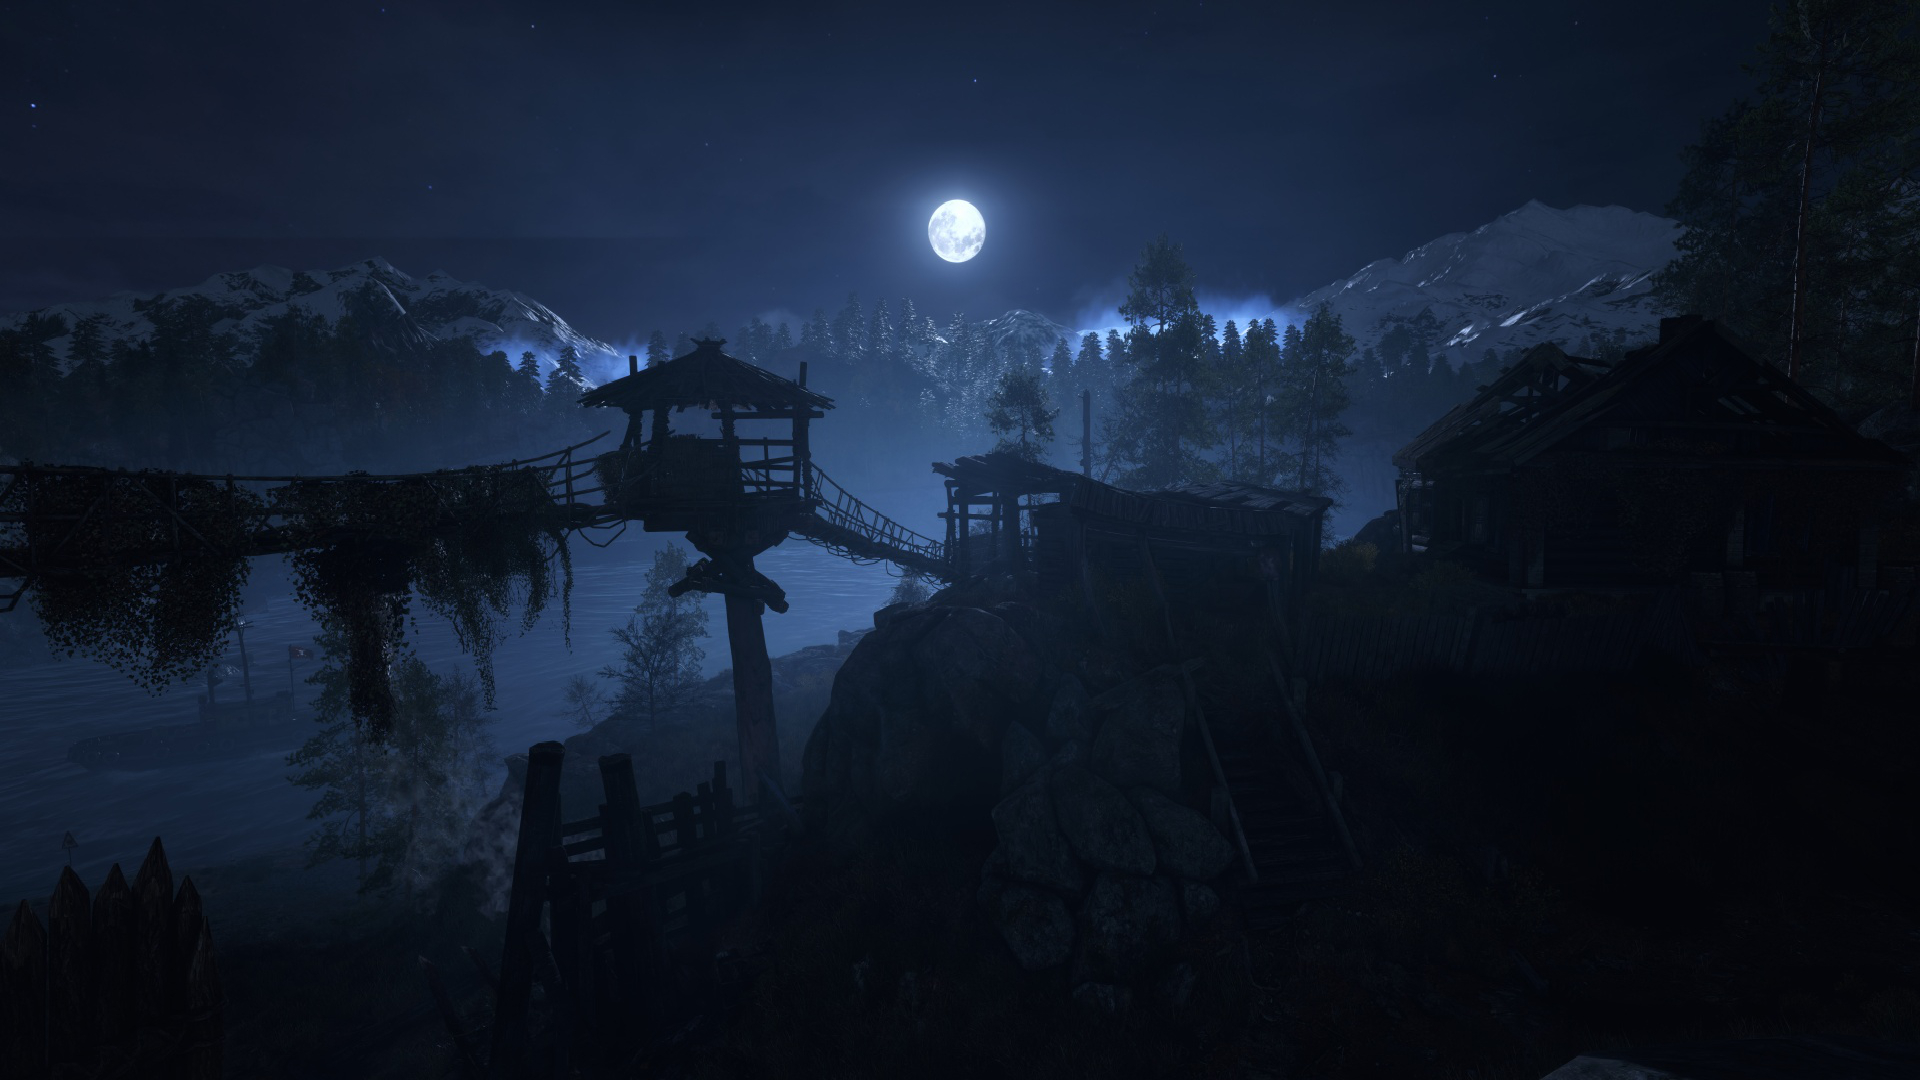 gage,videogame,moonlight,metro,daydream,moonshine,stake,lunation,moon,synodic month,lunar month,game,games,subway,night,underground,landscape